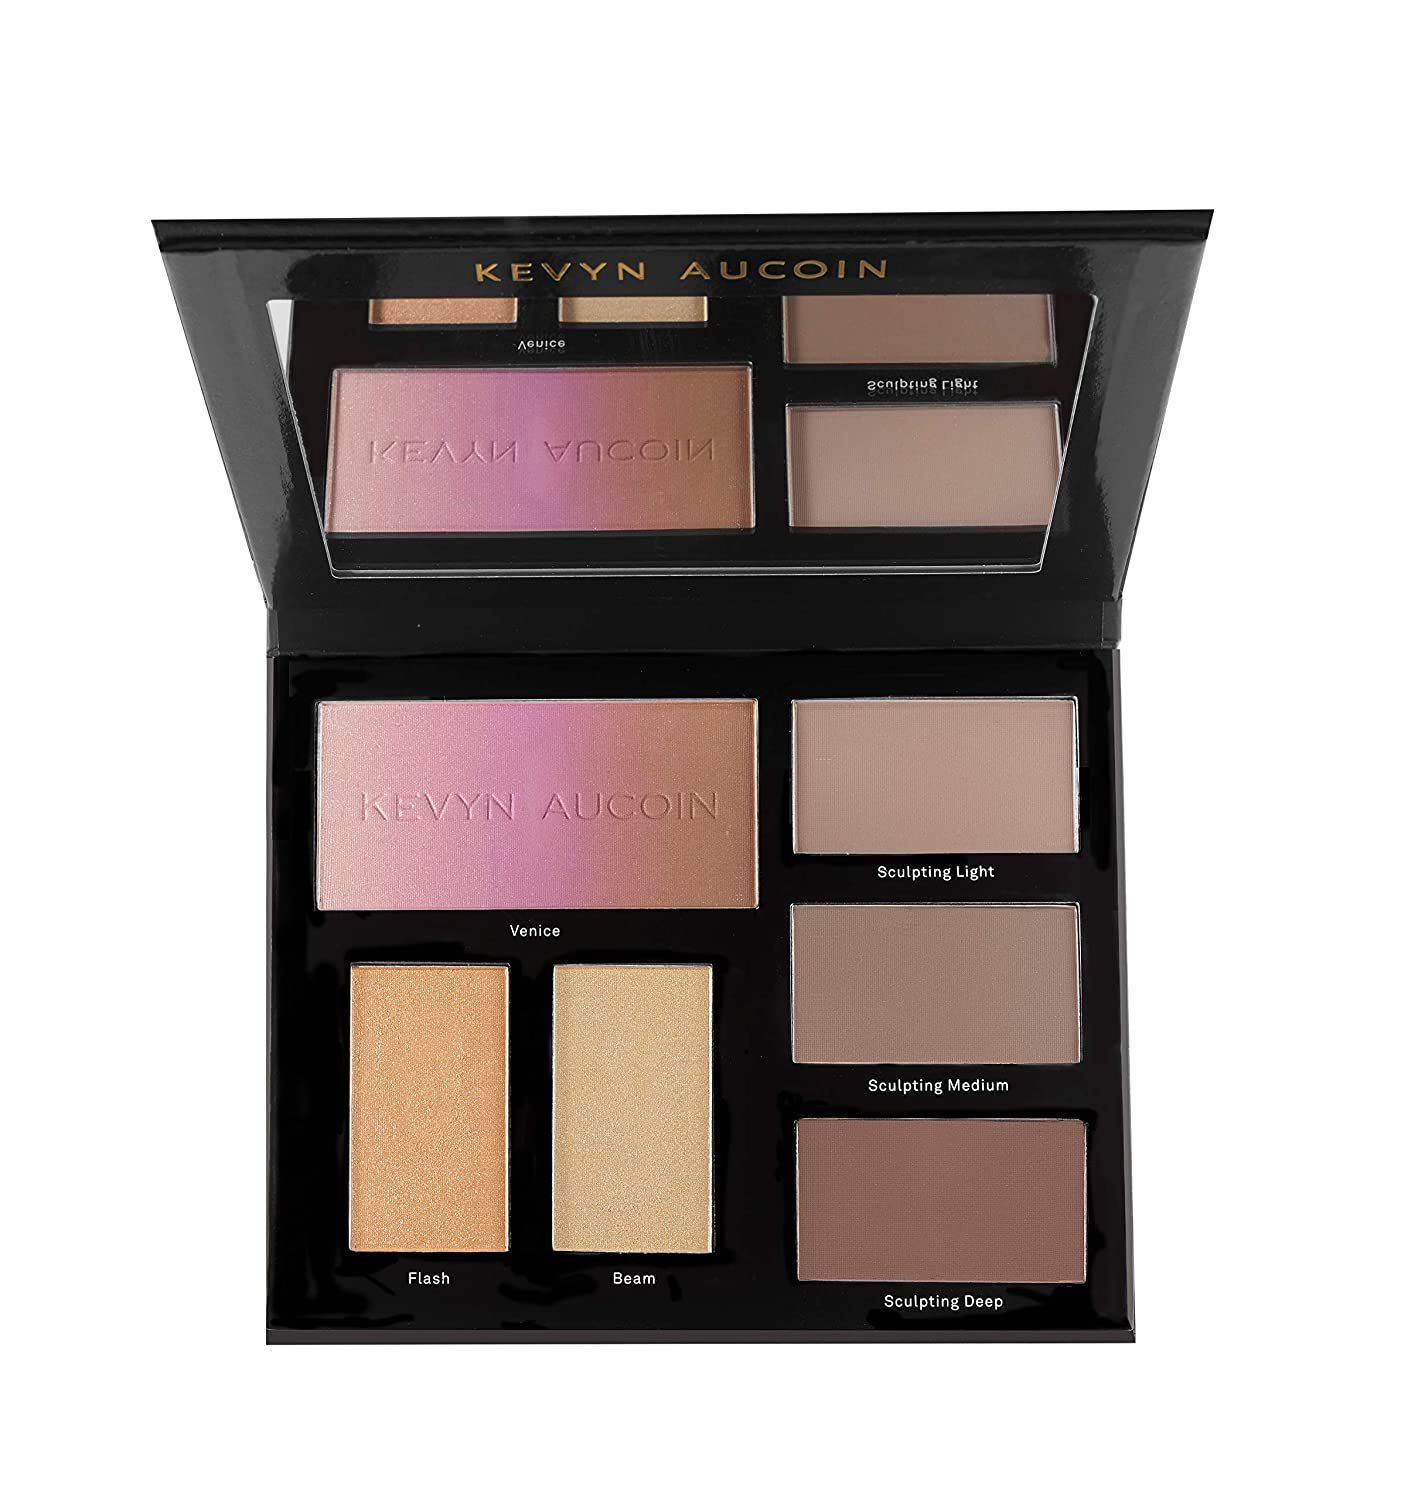 Kevyn Aucoin Beauty The Contour Book: The Art Of Sculpting & Defining Volume III